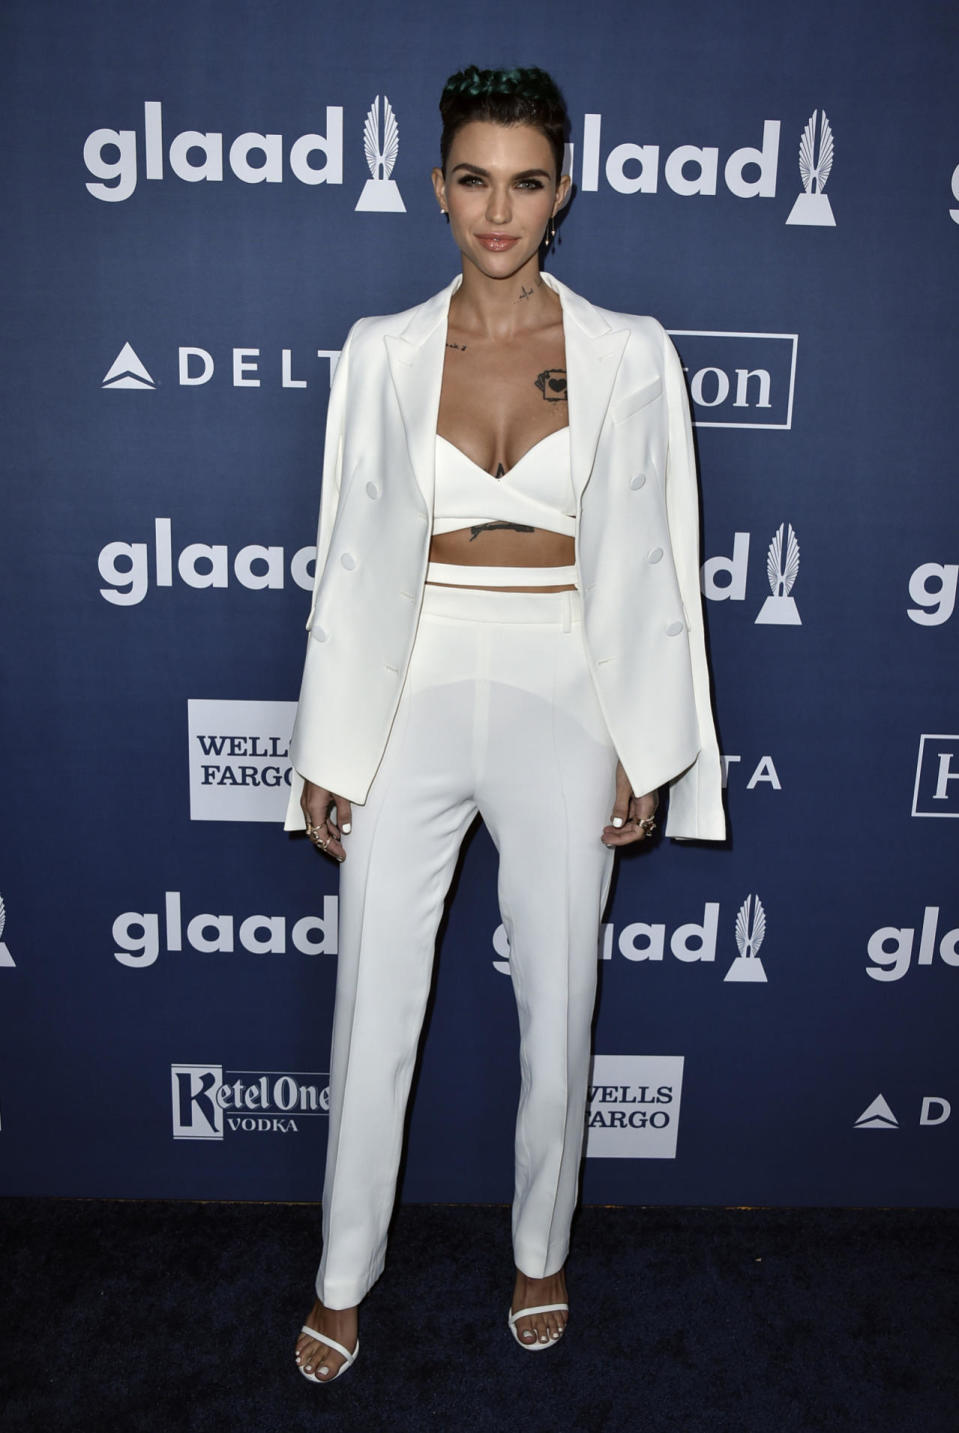 """<p>Is this Ruby Rose's official induction into Taylor Swift's squad? The singer surprised the audience at the event to present an award to Rose, who wore a white Aquilano Rimondi suit with a crop top and Stuart Weitzman sandals. """"Of all the possible things that could trigger me and make me cry, I didn't think about Taylor Swift coming to give me the award,"""" she said during her acceptance speech. The DJ and actress added a pop of color with a green braid on the top of her head. <i>(Photo: AP)</i></p>"""